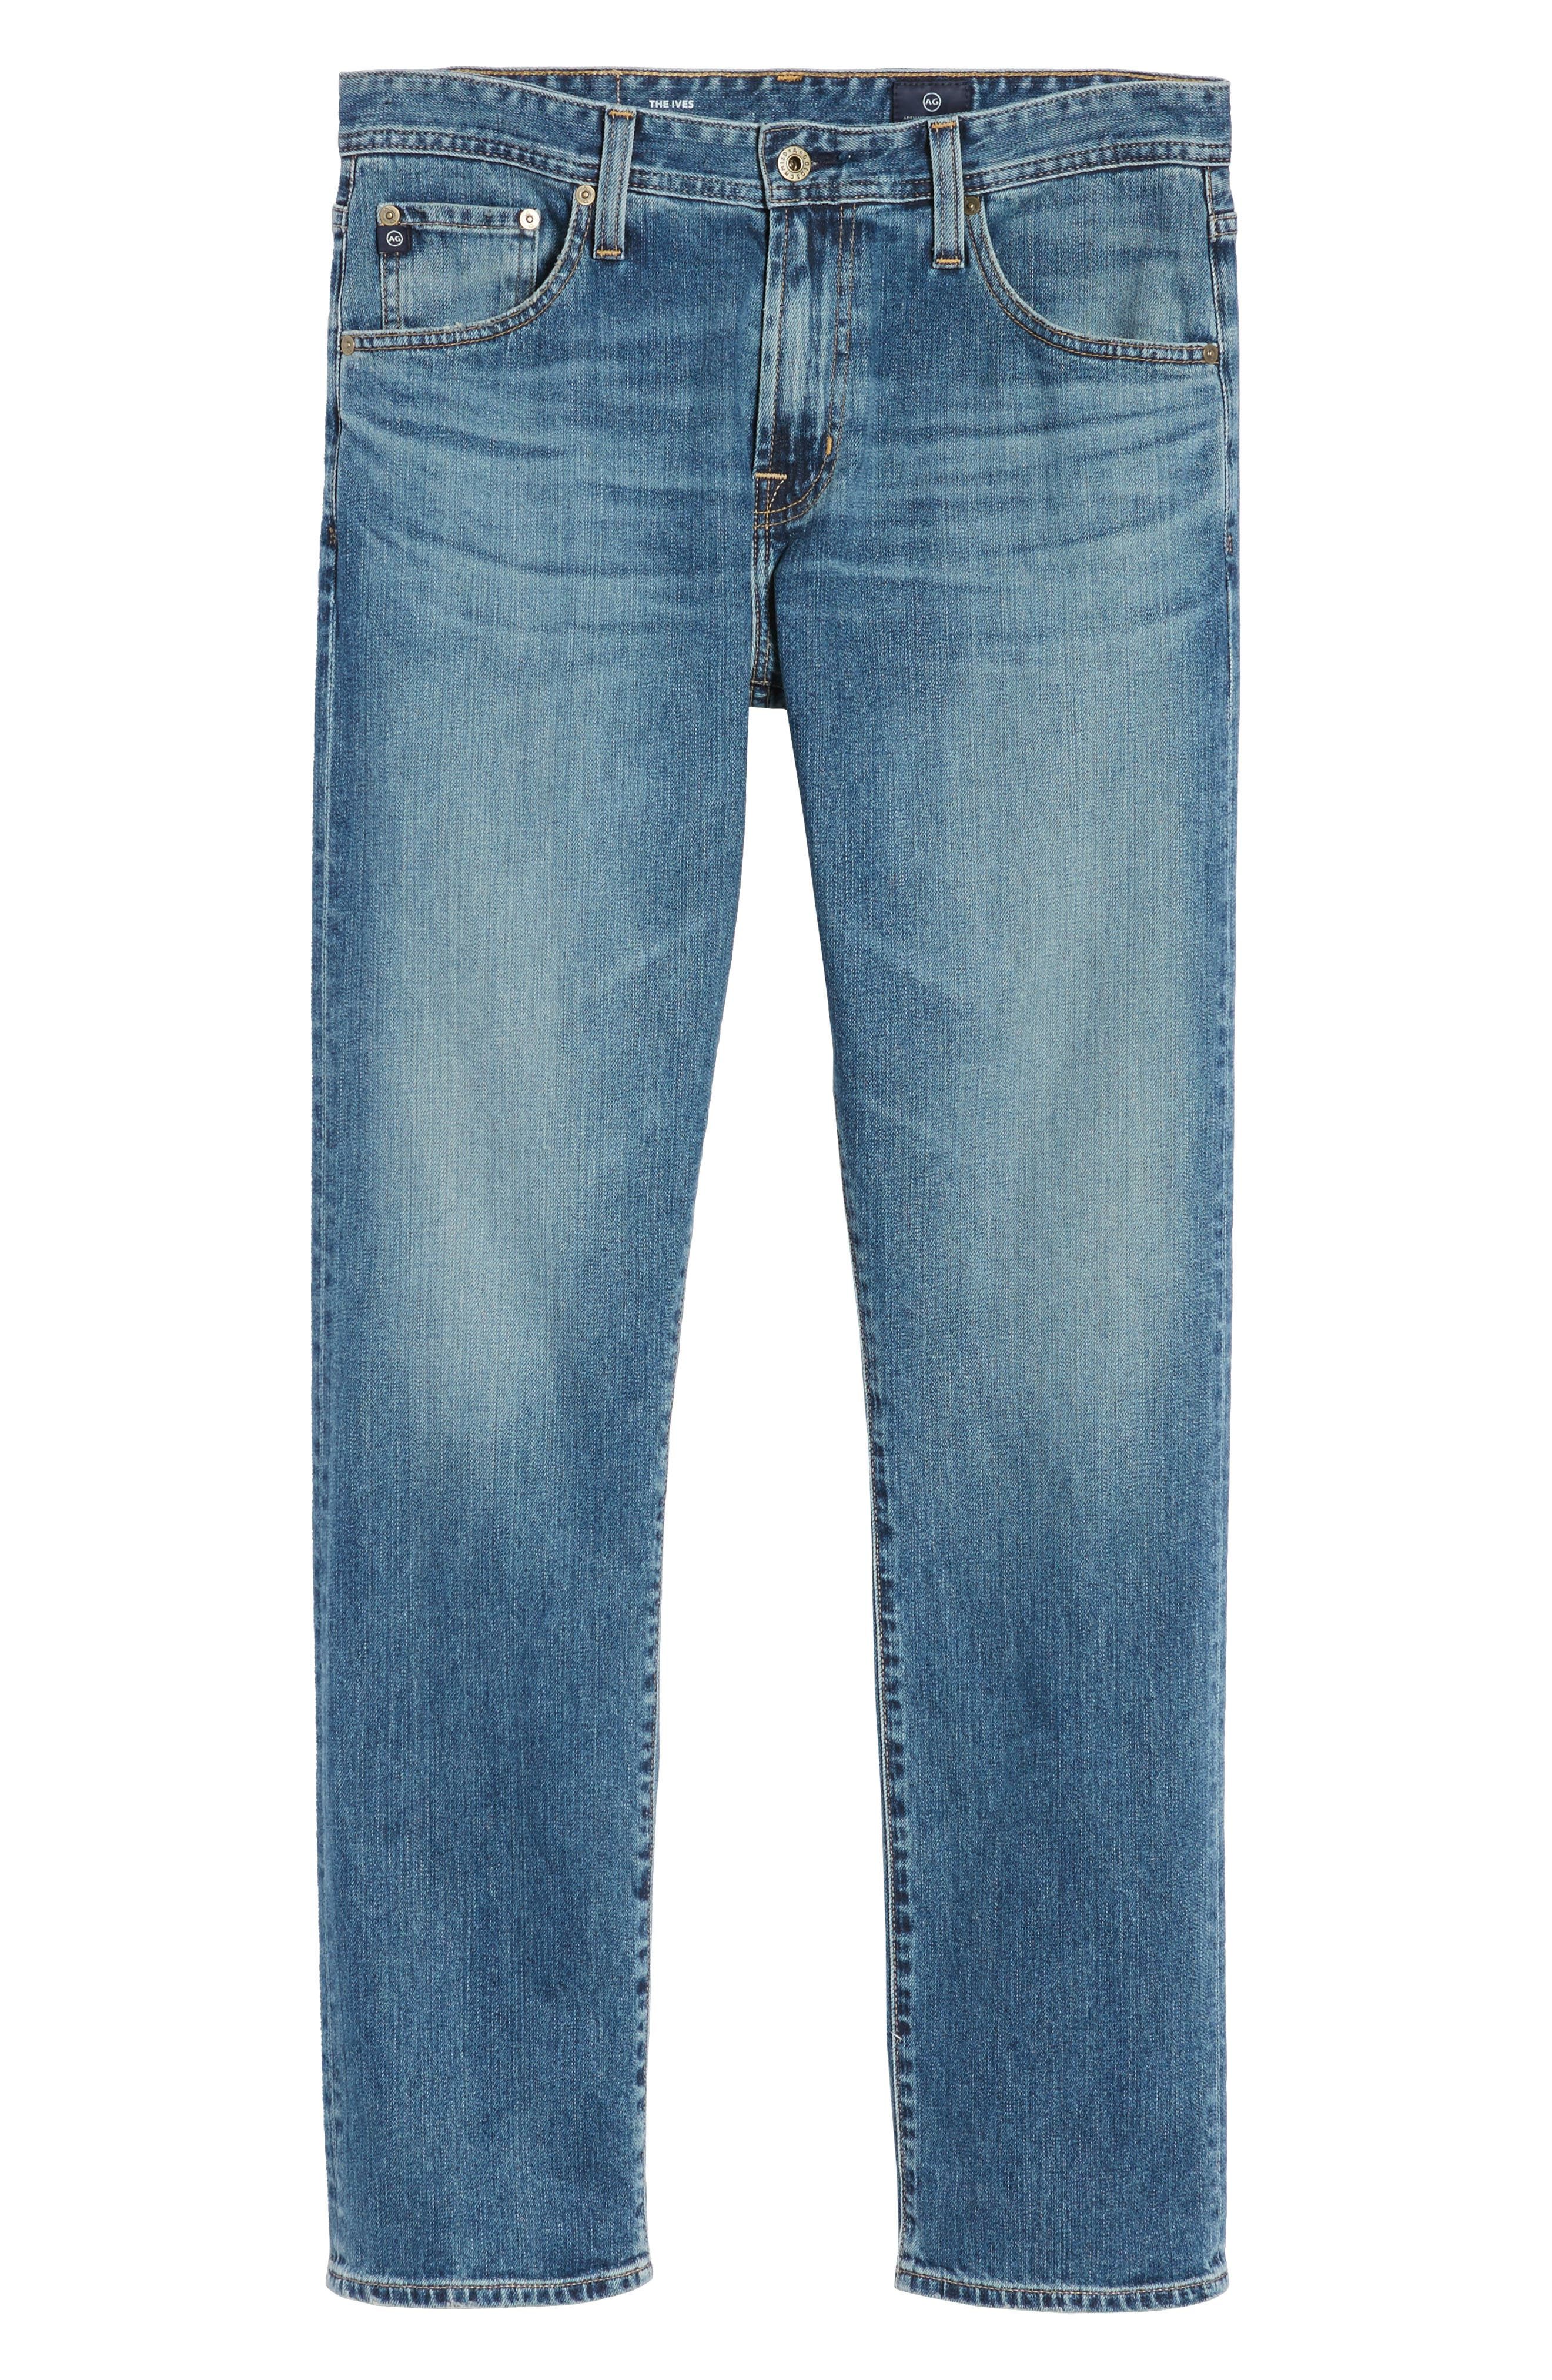 Ives Straight Fit Jeans,                             Alternate thumbnail 6, color,                             419